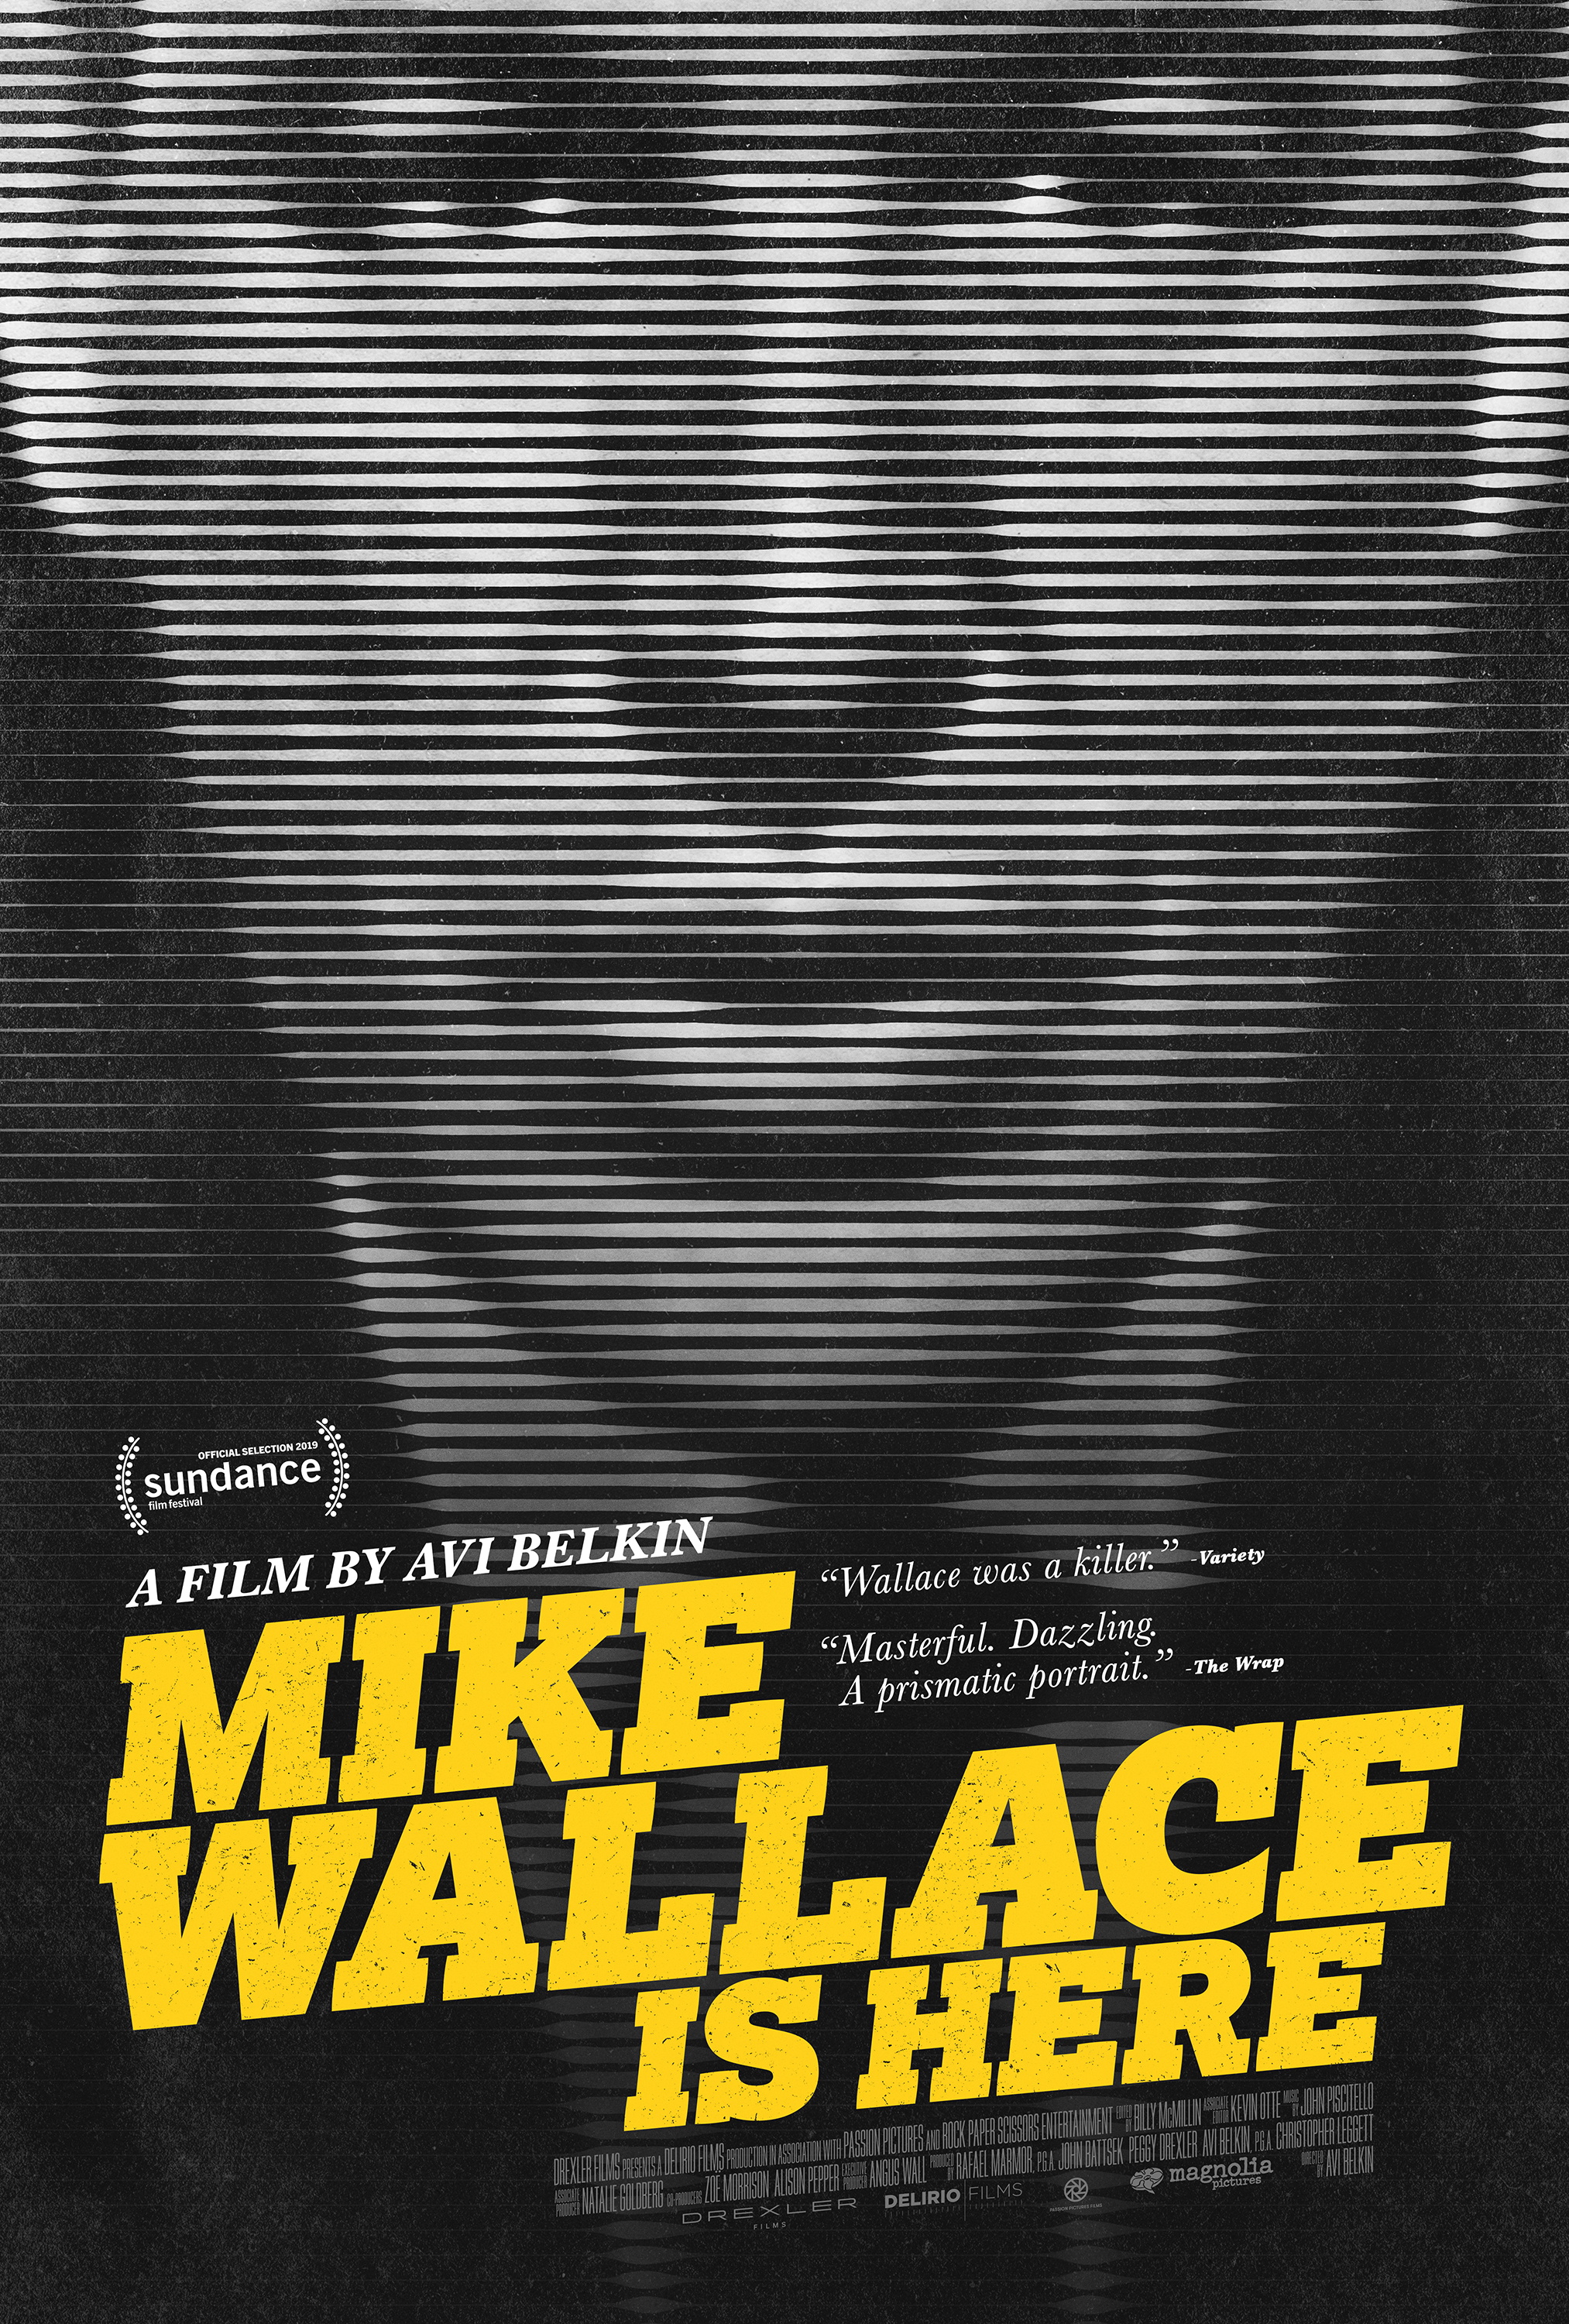 Mike Wallace Is Here   (2019) dir. Avi Belkin Rated: PG-13 image: ©2019  Magnolia Pictures